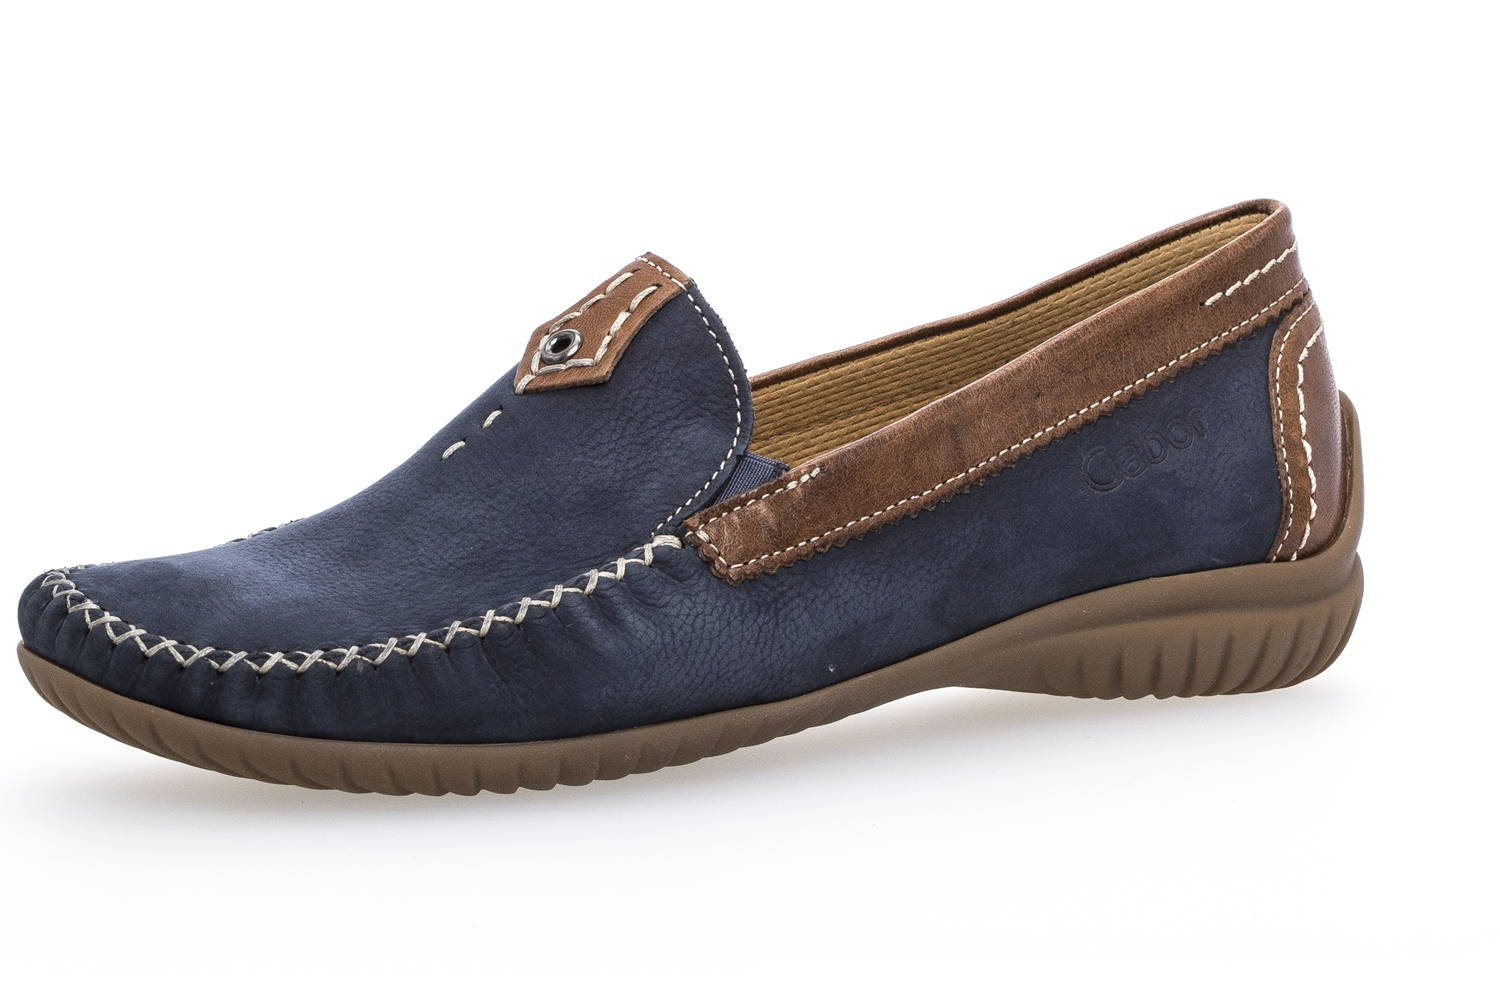 Gabor Damen Comfort Basic Navy/Copper Slipper Navy/Copper Basic 56d3f6